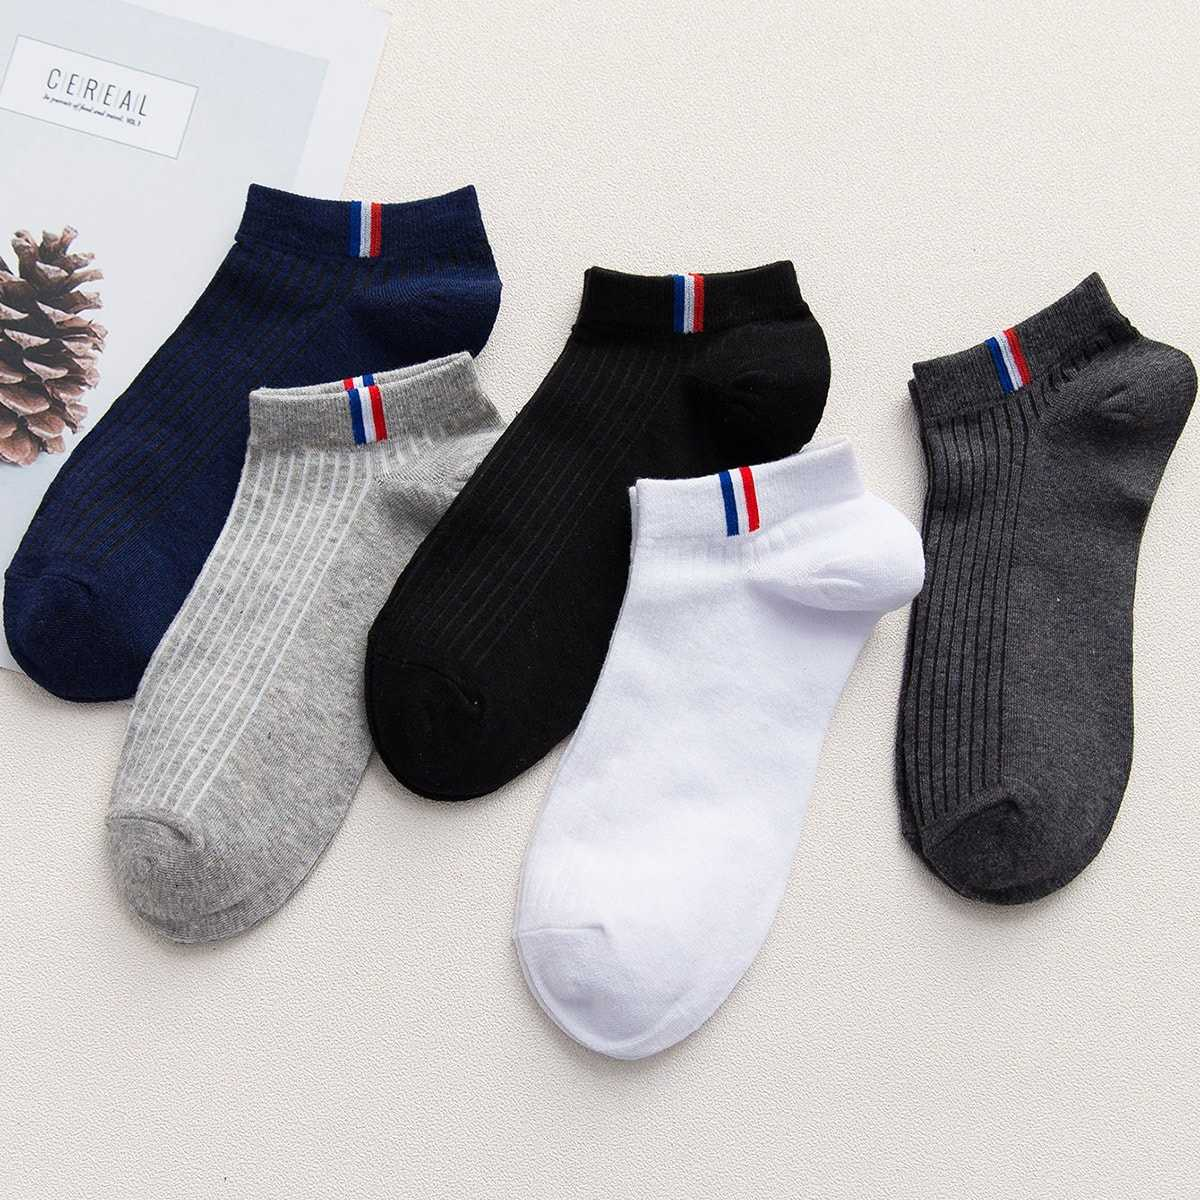 Guys Simple Socks 5pairs in Multicolor by ROMWE on GOOFASH